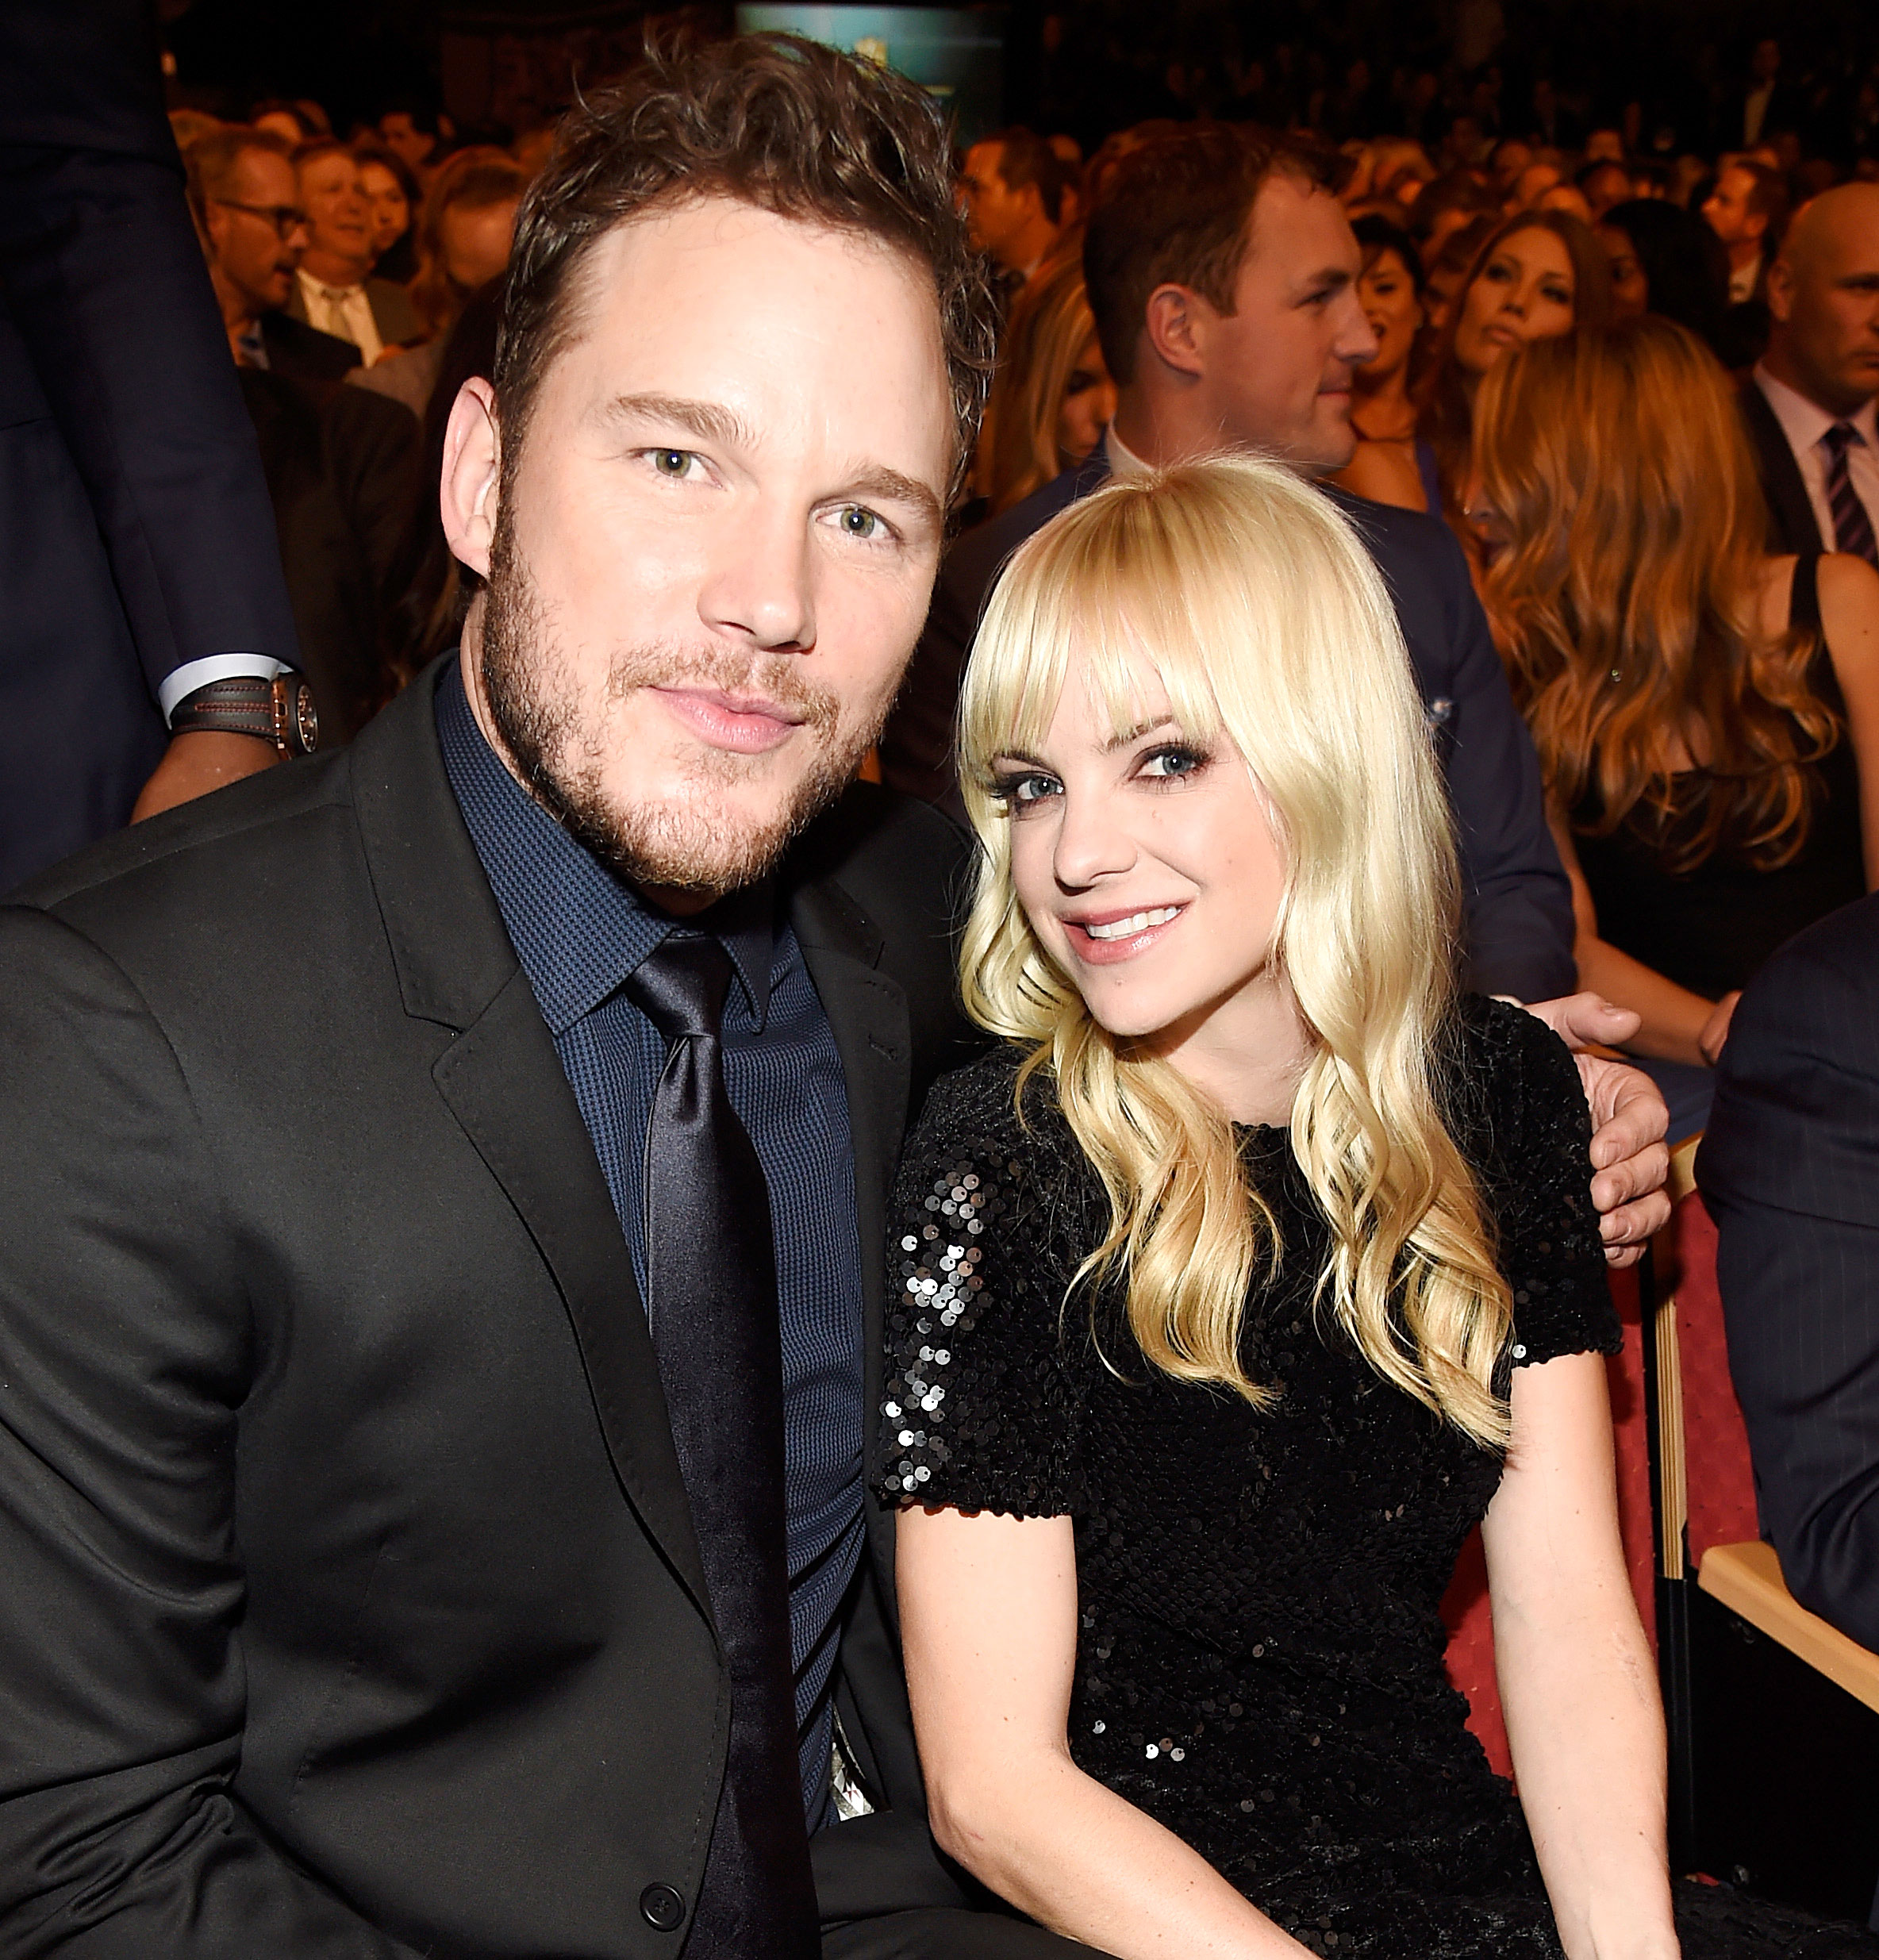 Anna Faris Says She and Ex-Husband Chris Pratt Hope to Spend Holidays Together - Chris Pratt and Anna Faris attend the 4th Annual NFL Honors at Phoenix Convention Center on January 31, 2015 in Phoenix, Arizona.